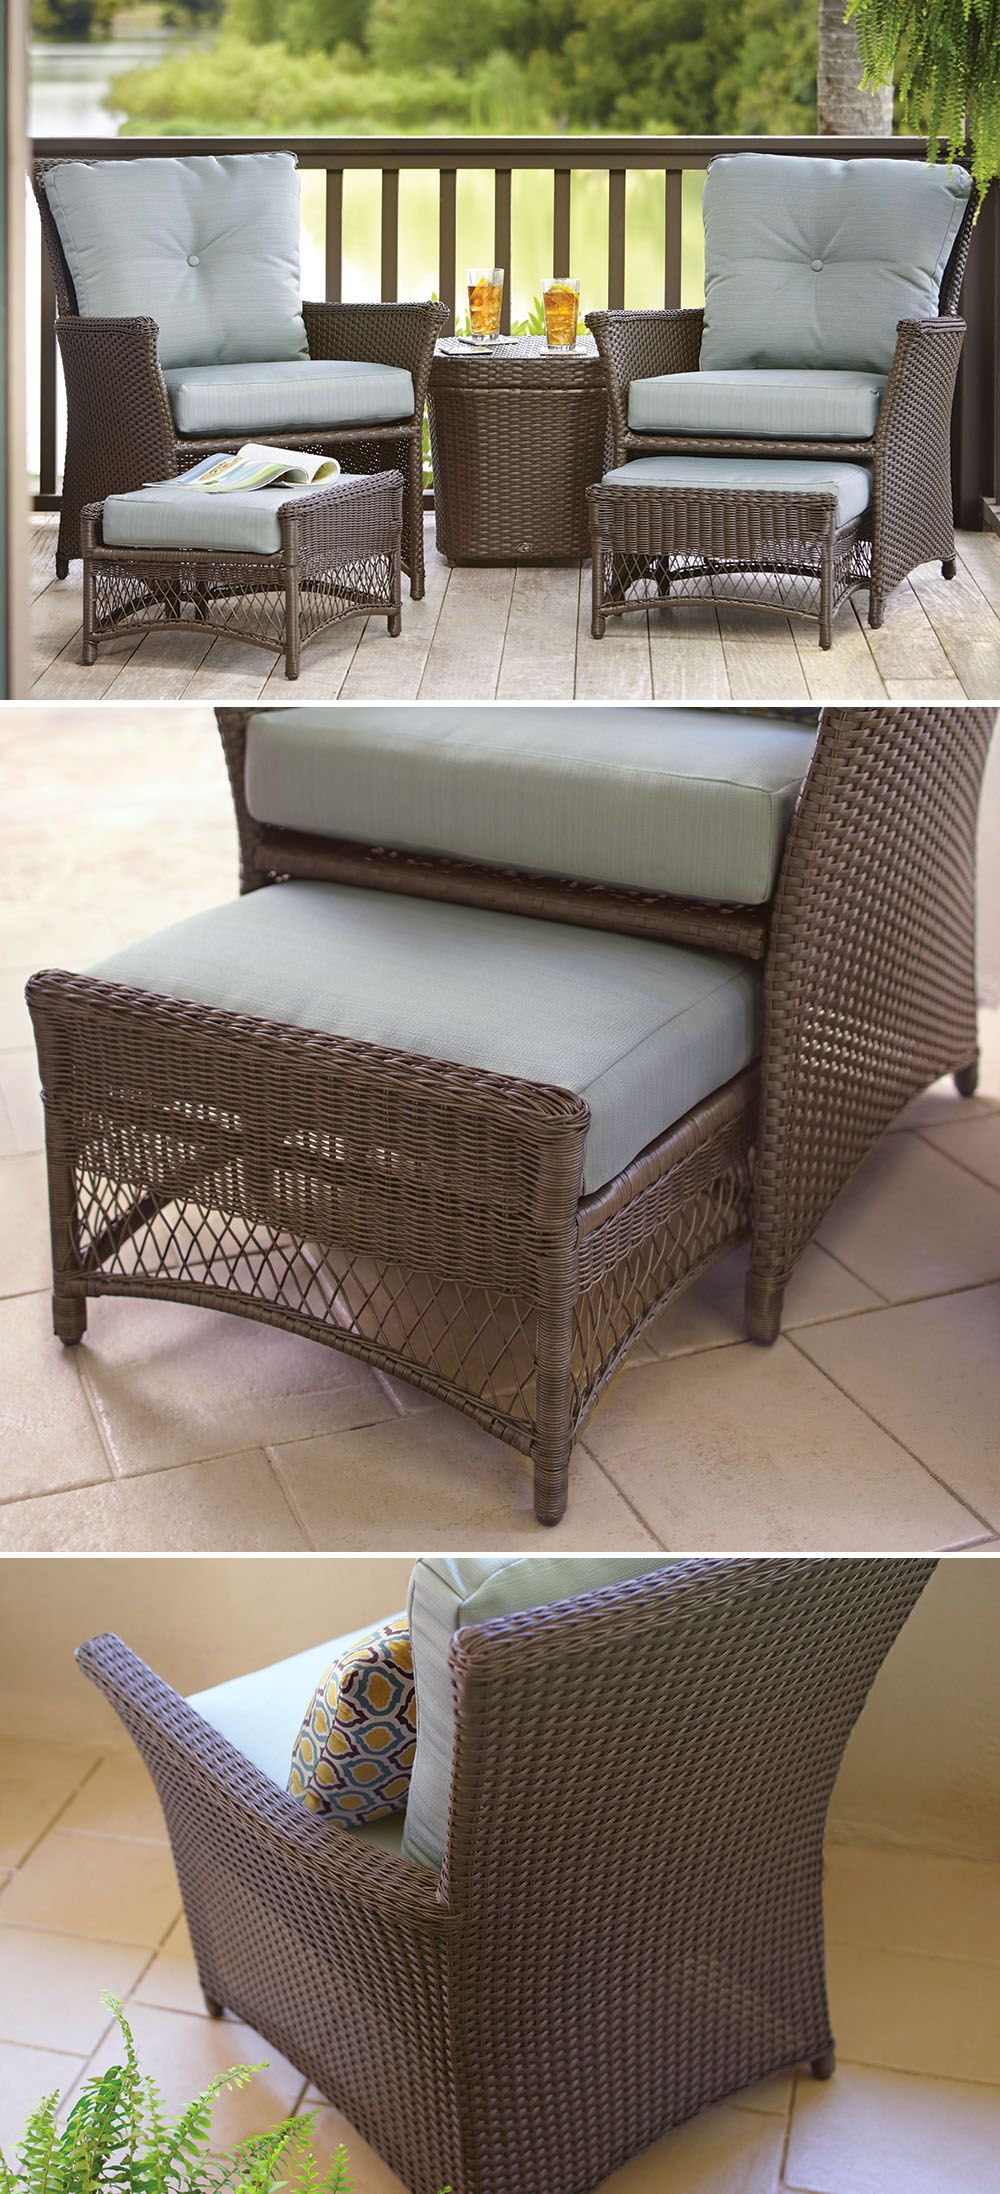 This Affordable Patio Set Is Just The Right Size For Your Small Patio Balcony Or Porch It Includes Two Stationary Chairs Cushions Tw Small Patio Furniture Balcony Furniture Affordable Outdoor Furniture